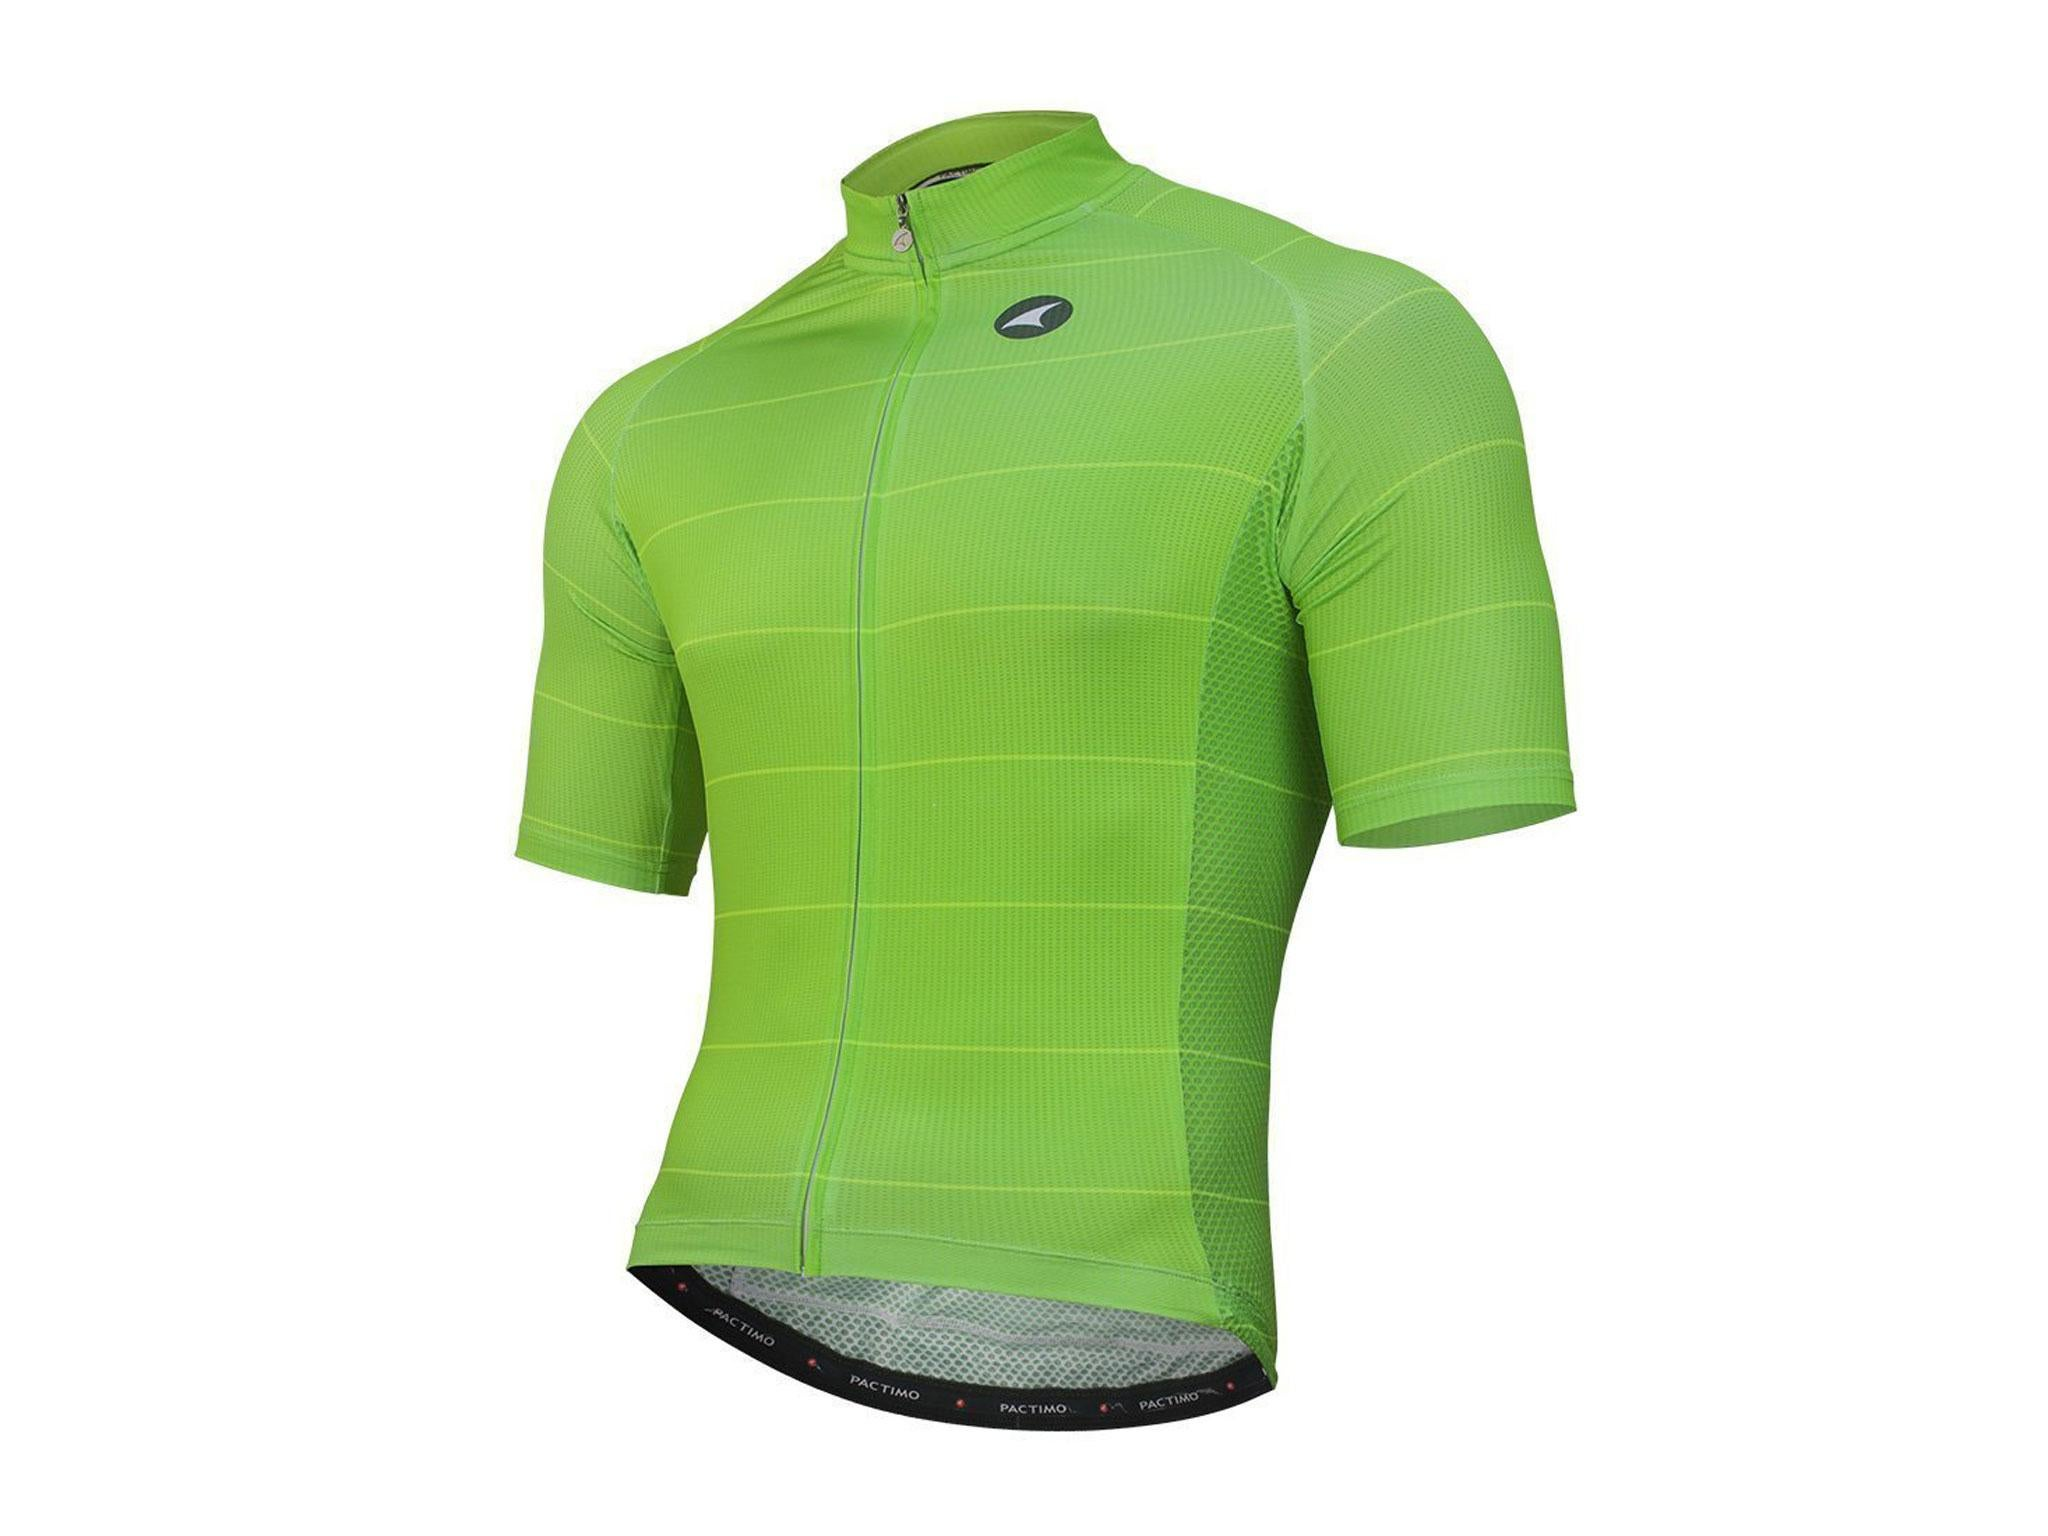 a4764a198 Here s one for the mountain goats among us – a super-light jersey for those  who love it when the road heads uphill. To get the weight down to a skinny  122g ...